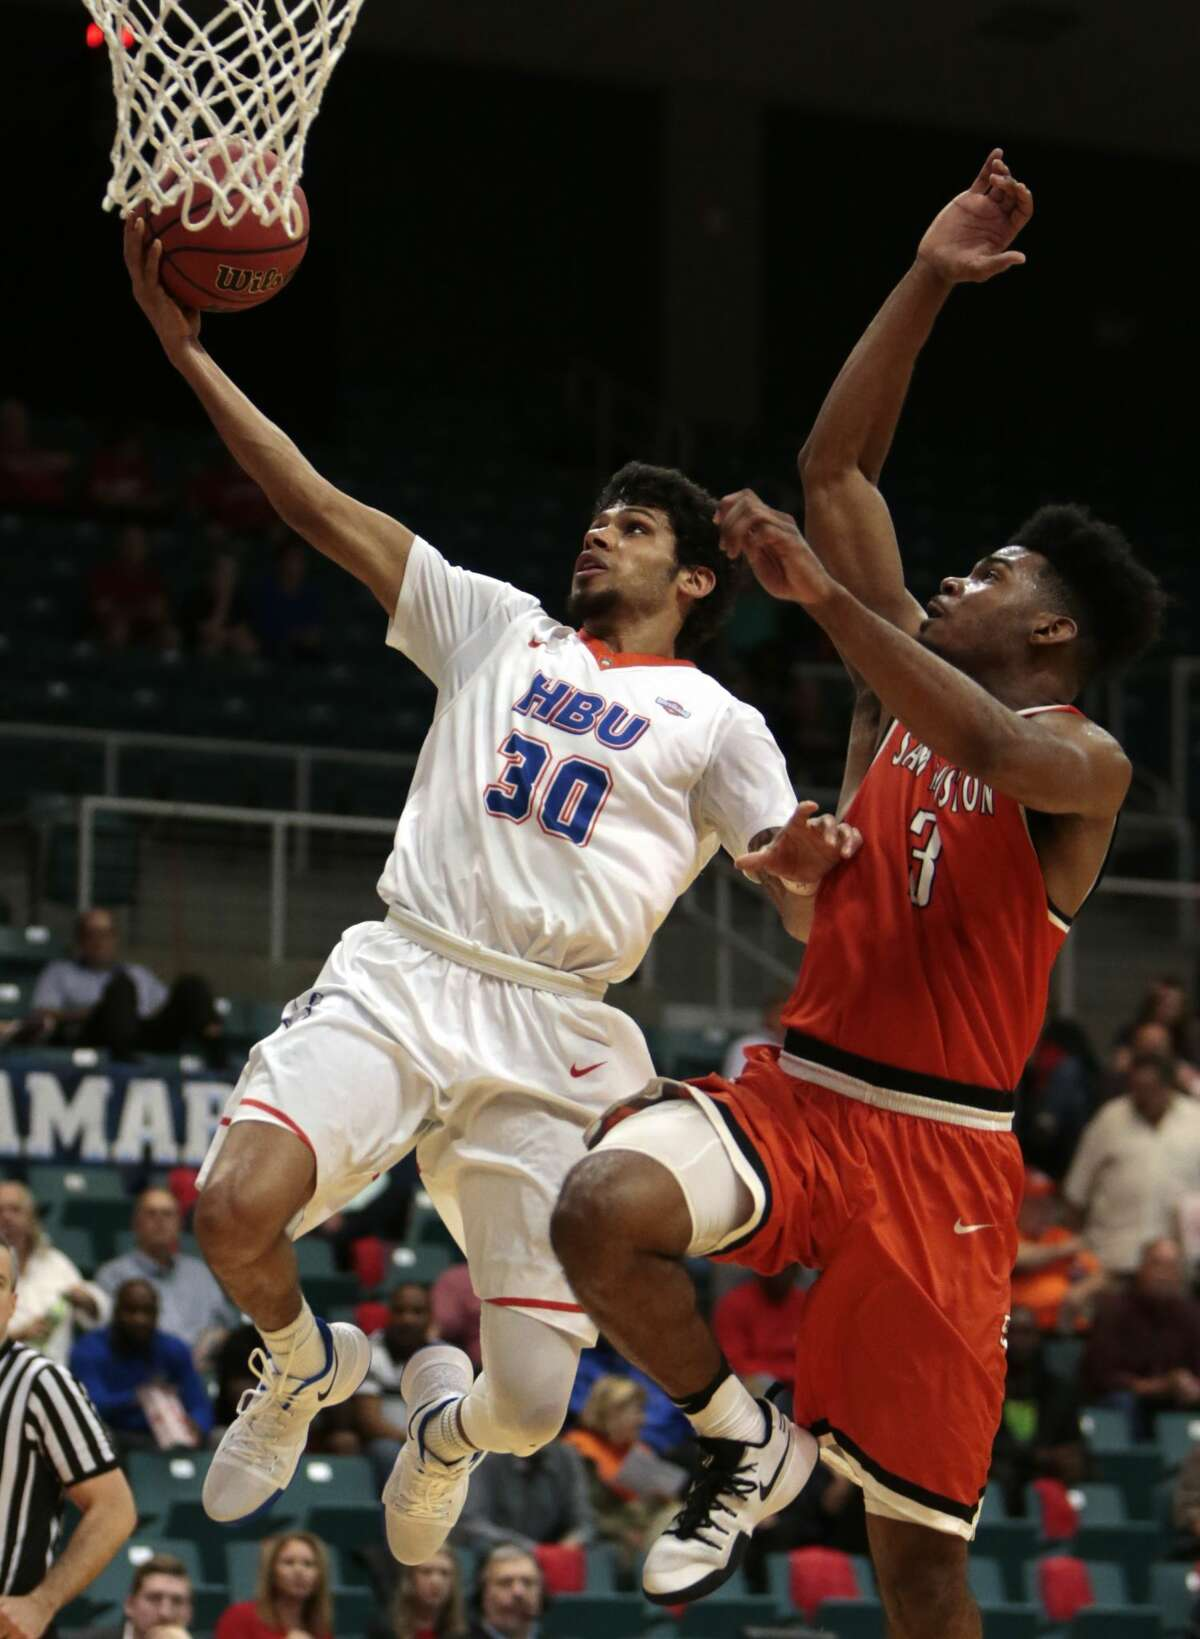 Houston Baptist guard Braxton Bonds (30) drives to the basket past Sam Houston State guard Dakarai Henderson (3) during the second half of a Southland Conference Tournament quarterfinal basketball game at the Merrell Center on Thursday, March 9, 2017, in Katy. ( Brett Coomer / Houston Chronicle )